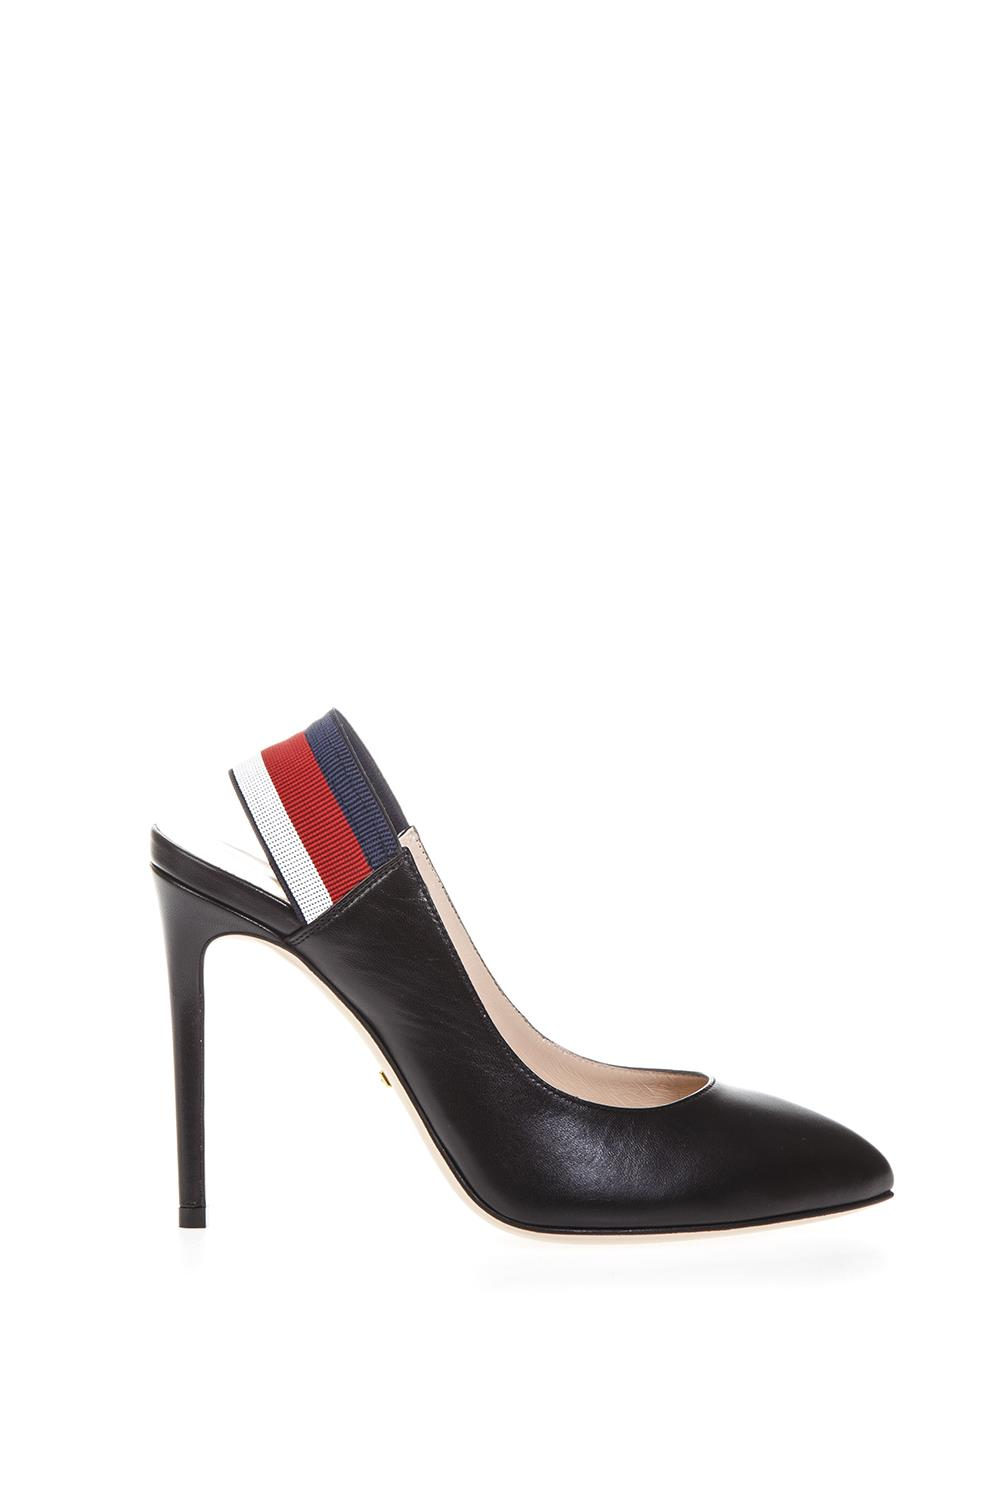 070425fa618 BLACK SYLVIE WEB PUMPS IN LEATHER FW 2018 - GUCCI - Boutique Galiano